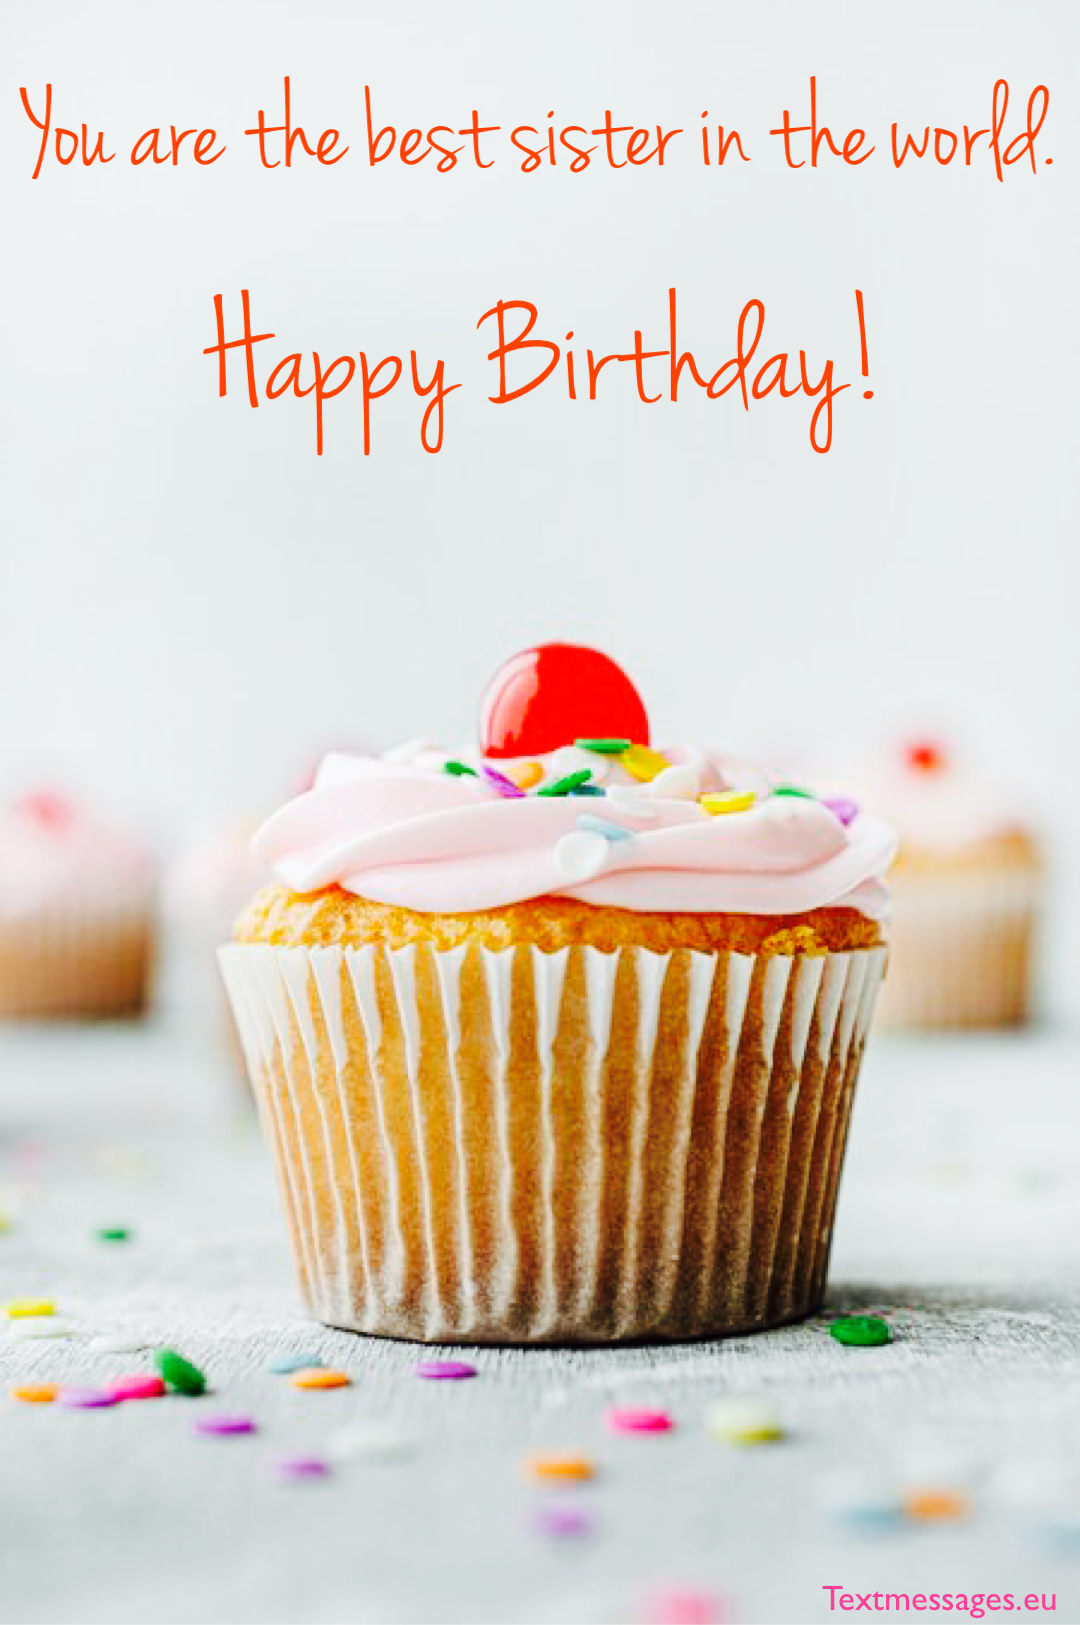 Birthday Quotes For Sister | Top 50 Happy Birthday Wishes For Sister With Images